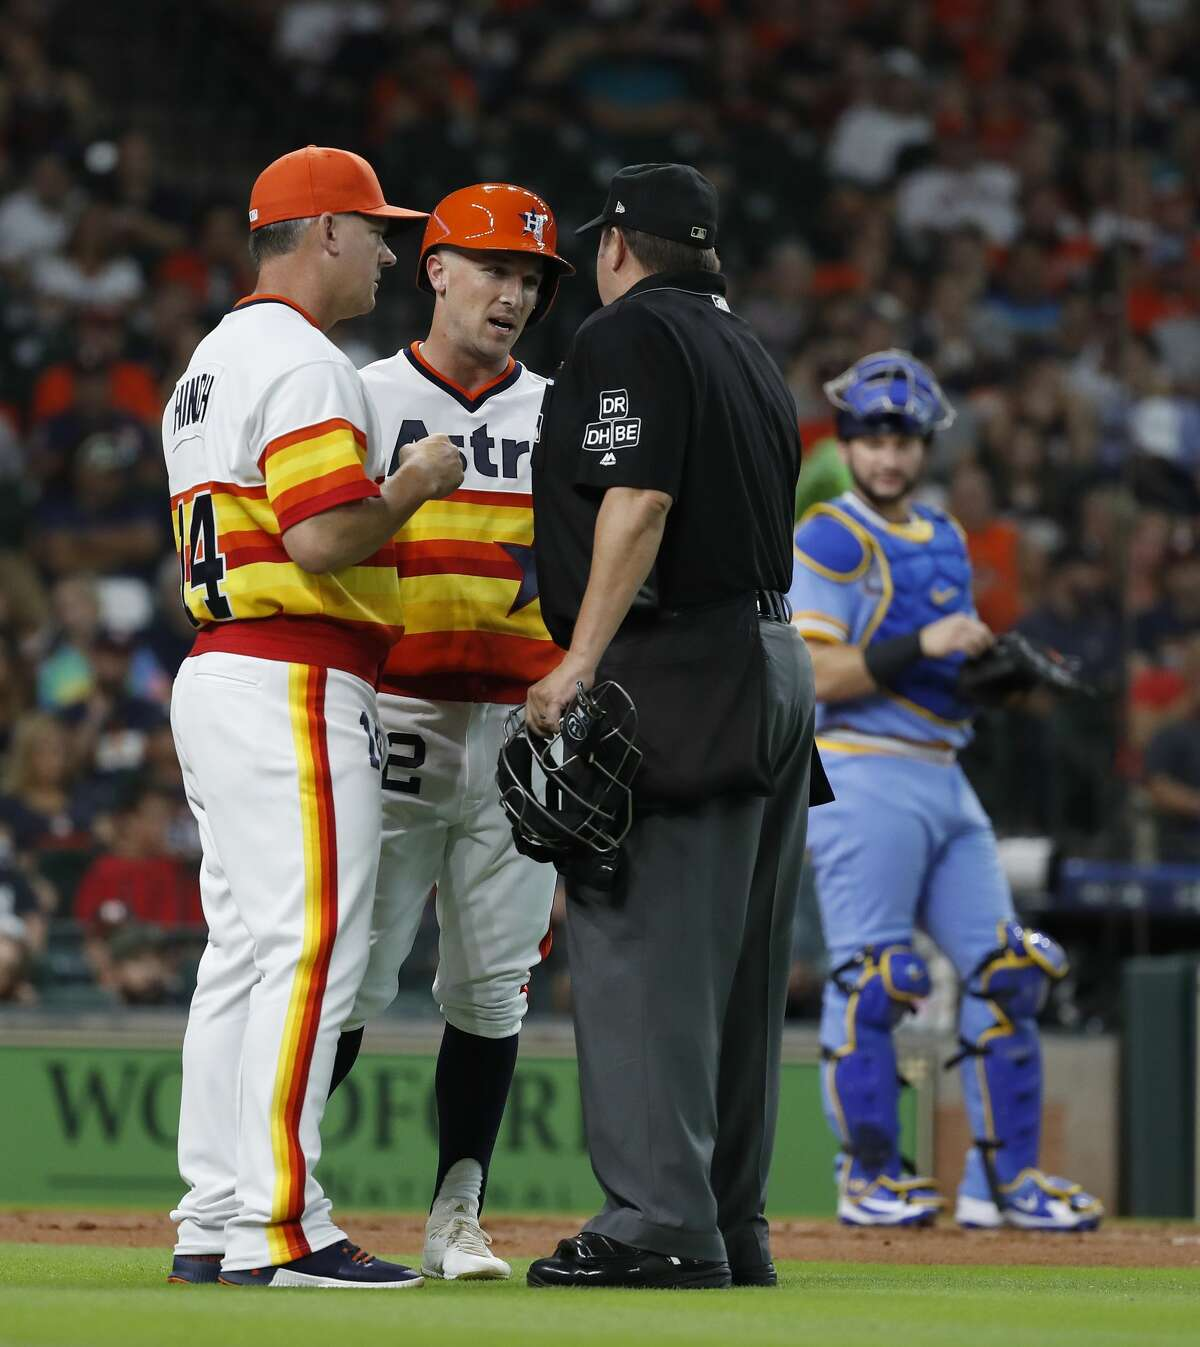 Houston Astros manager AJ Hinch (14) argues with home plate umpire Doug Eddings that Houston Astros Alex Bregman (2) fouled a ball off his foot during the first inning of an MLB game at Minute Maid Park, Friday, August 10, 2018, in Houston.